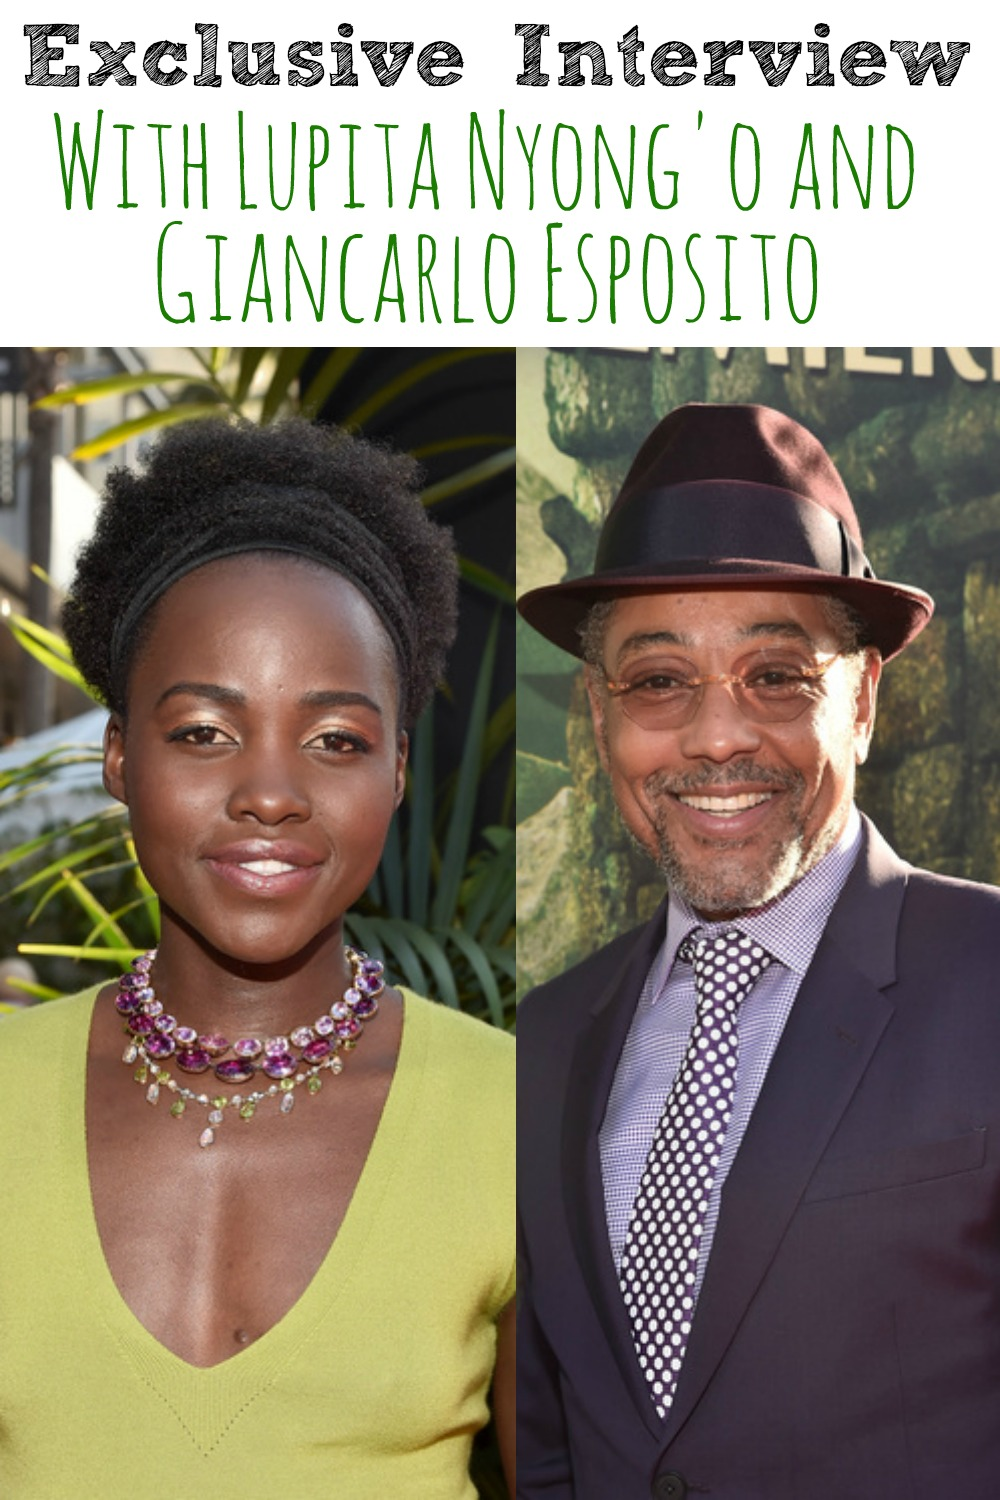 Exclusive Interview with Lupita Nyong'o and Giancarlo Esposito about the newest Disney live action film The Jungle Book!